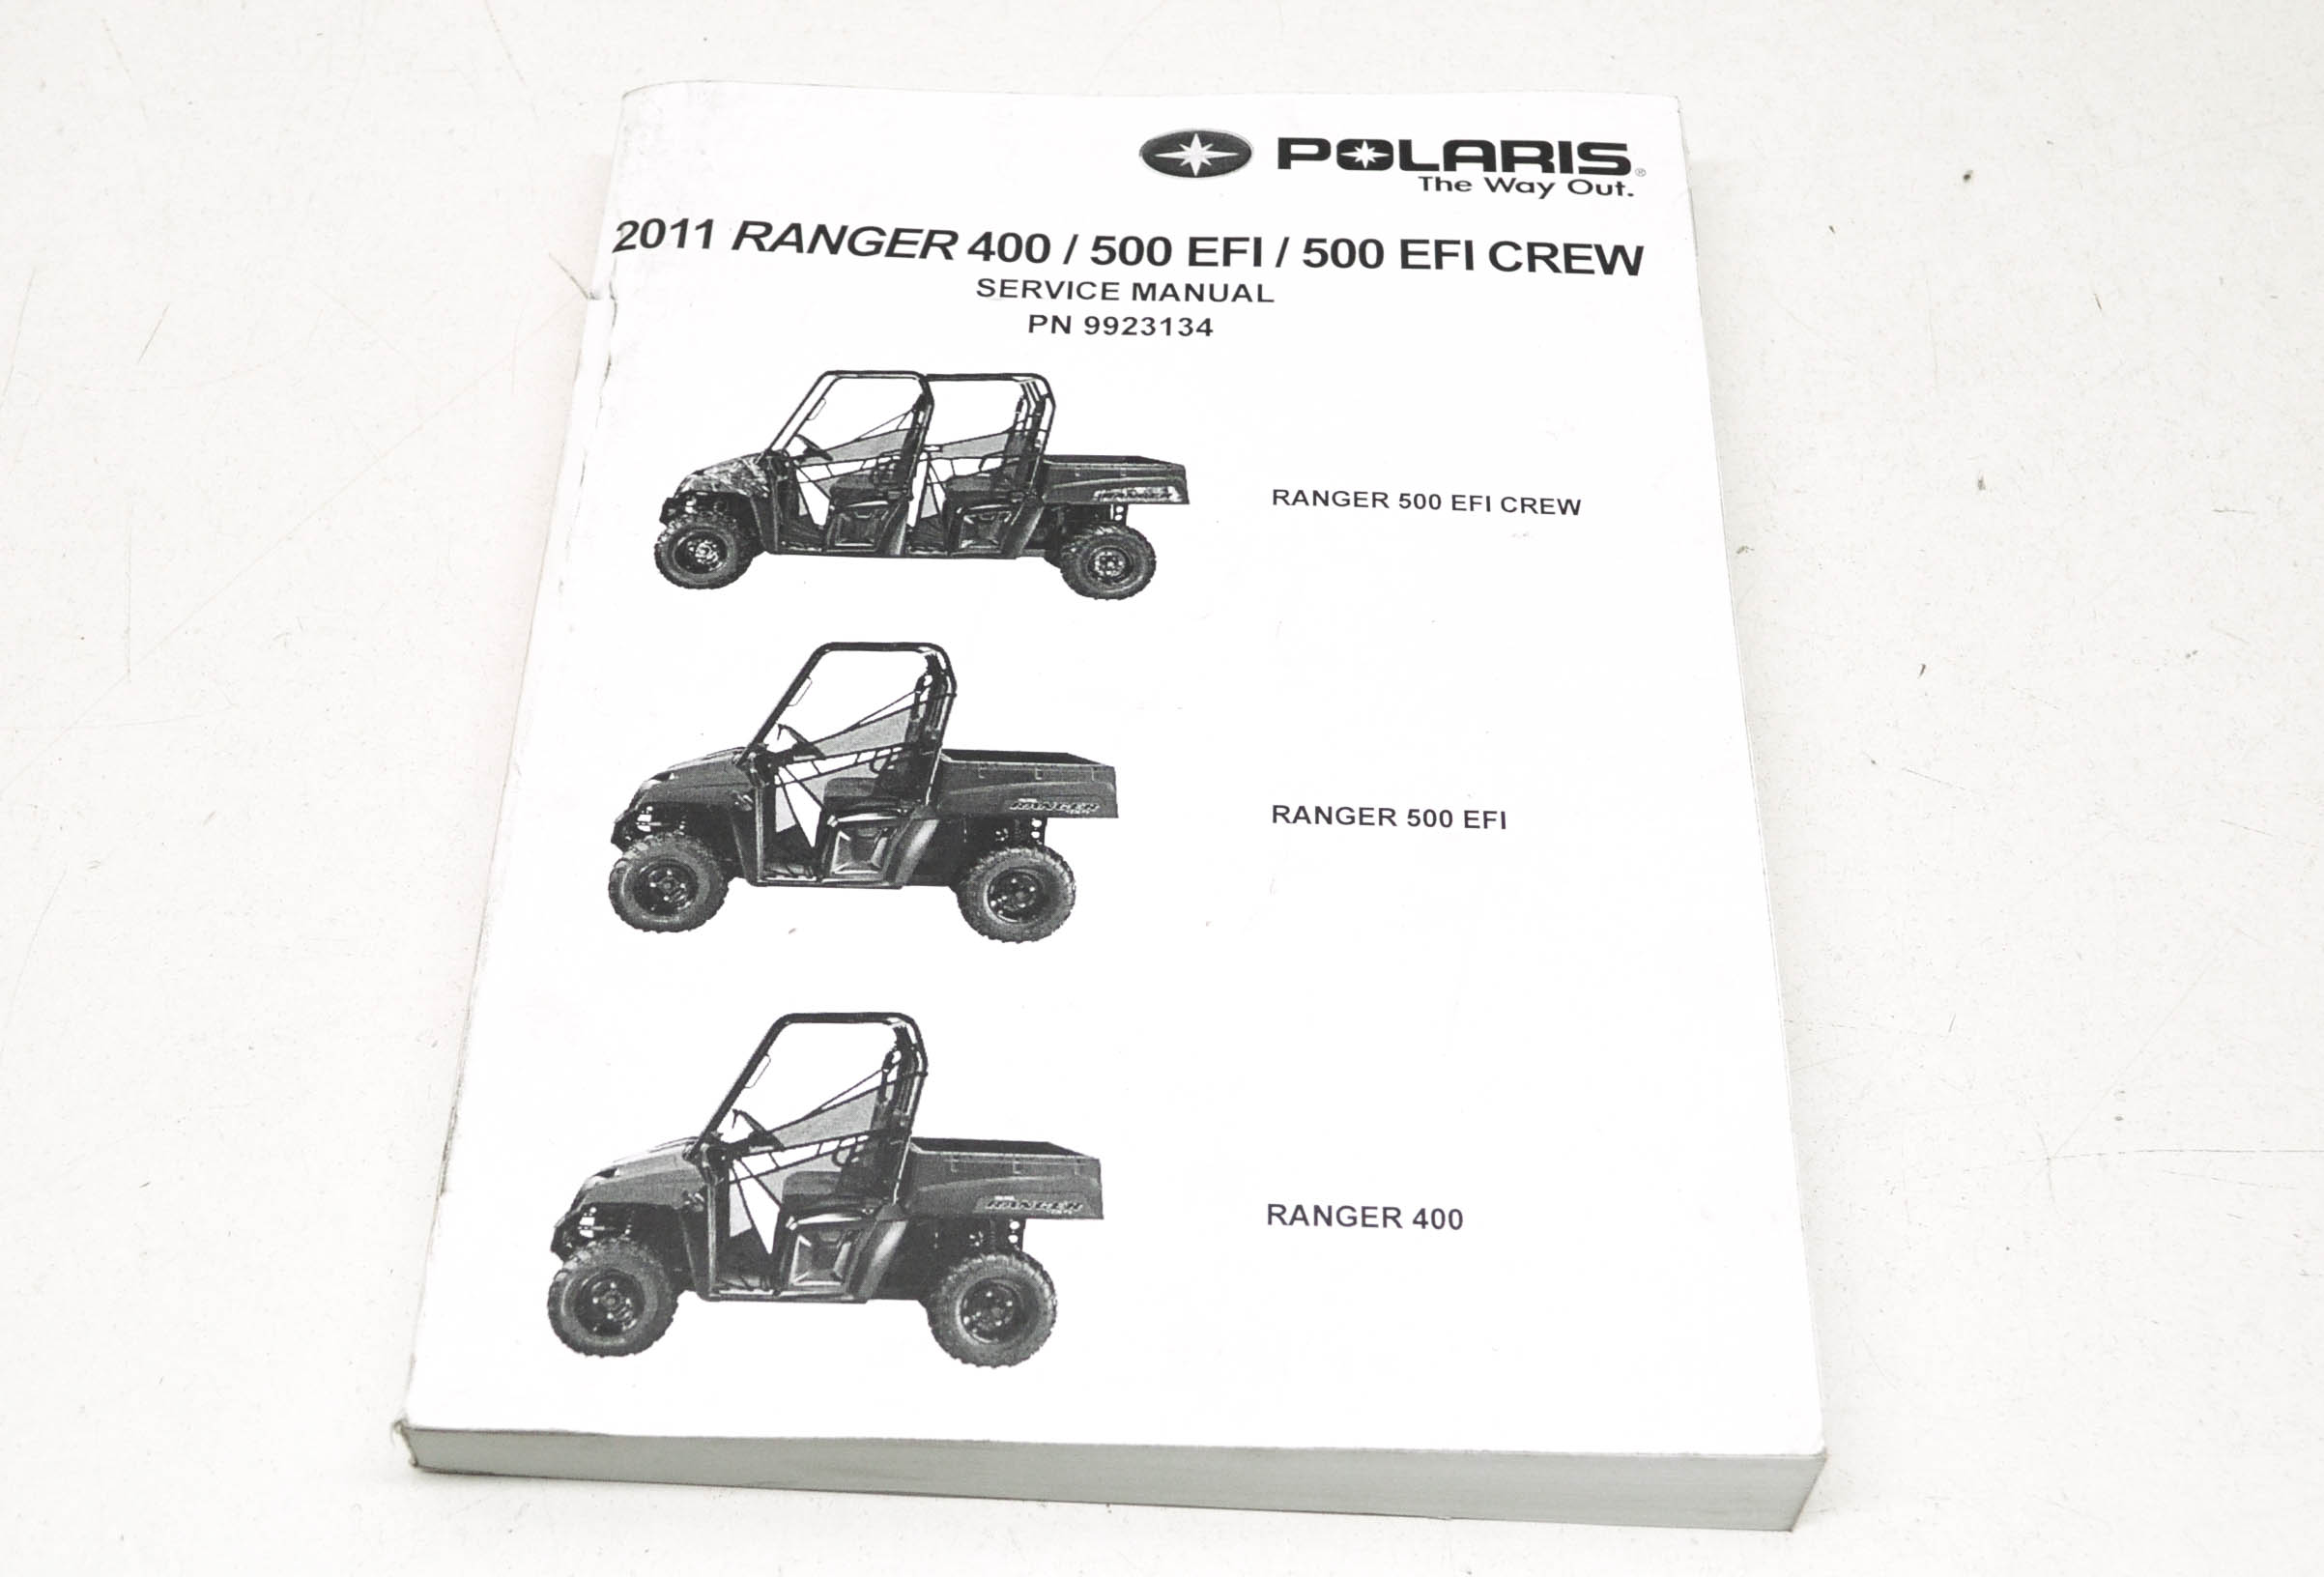 Oem Polaris Service Manual 12 Ranger 400 500 4x4